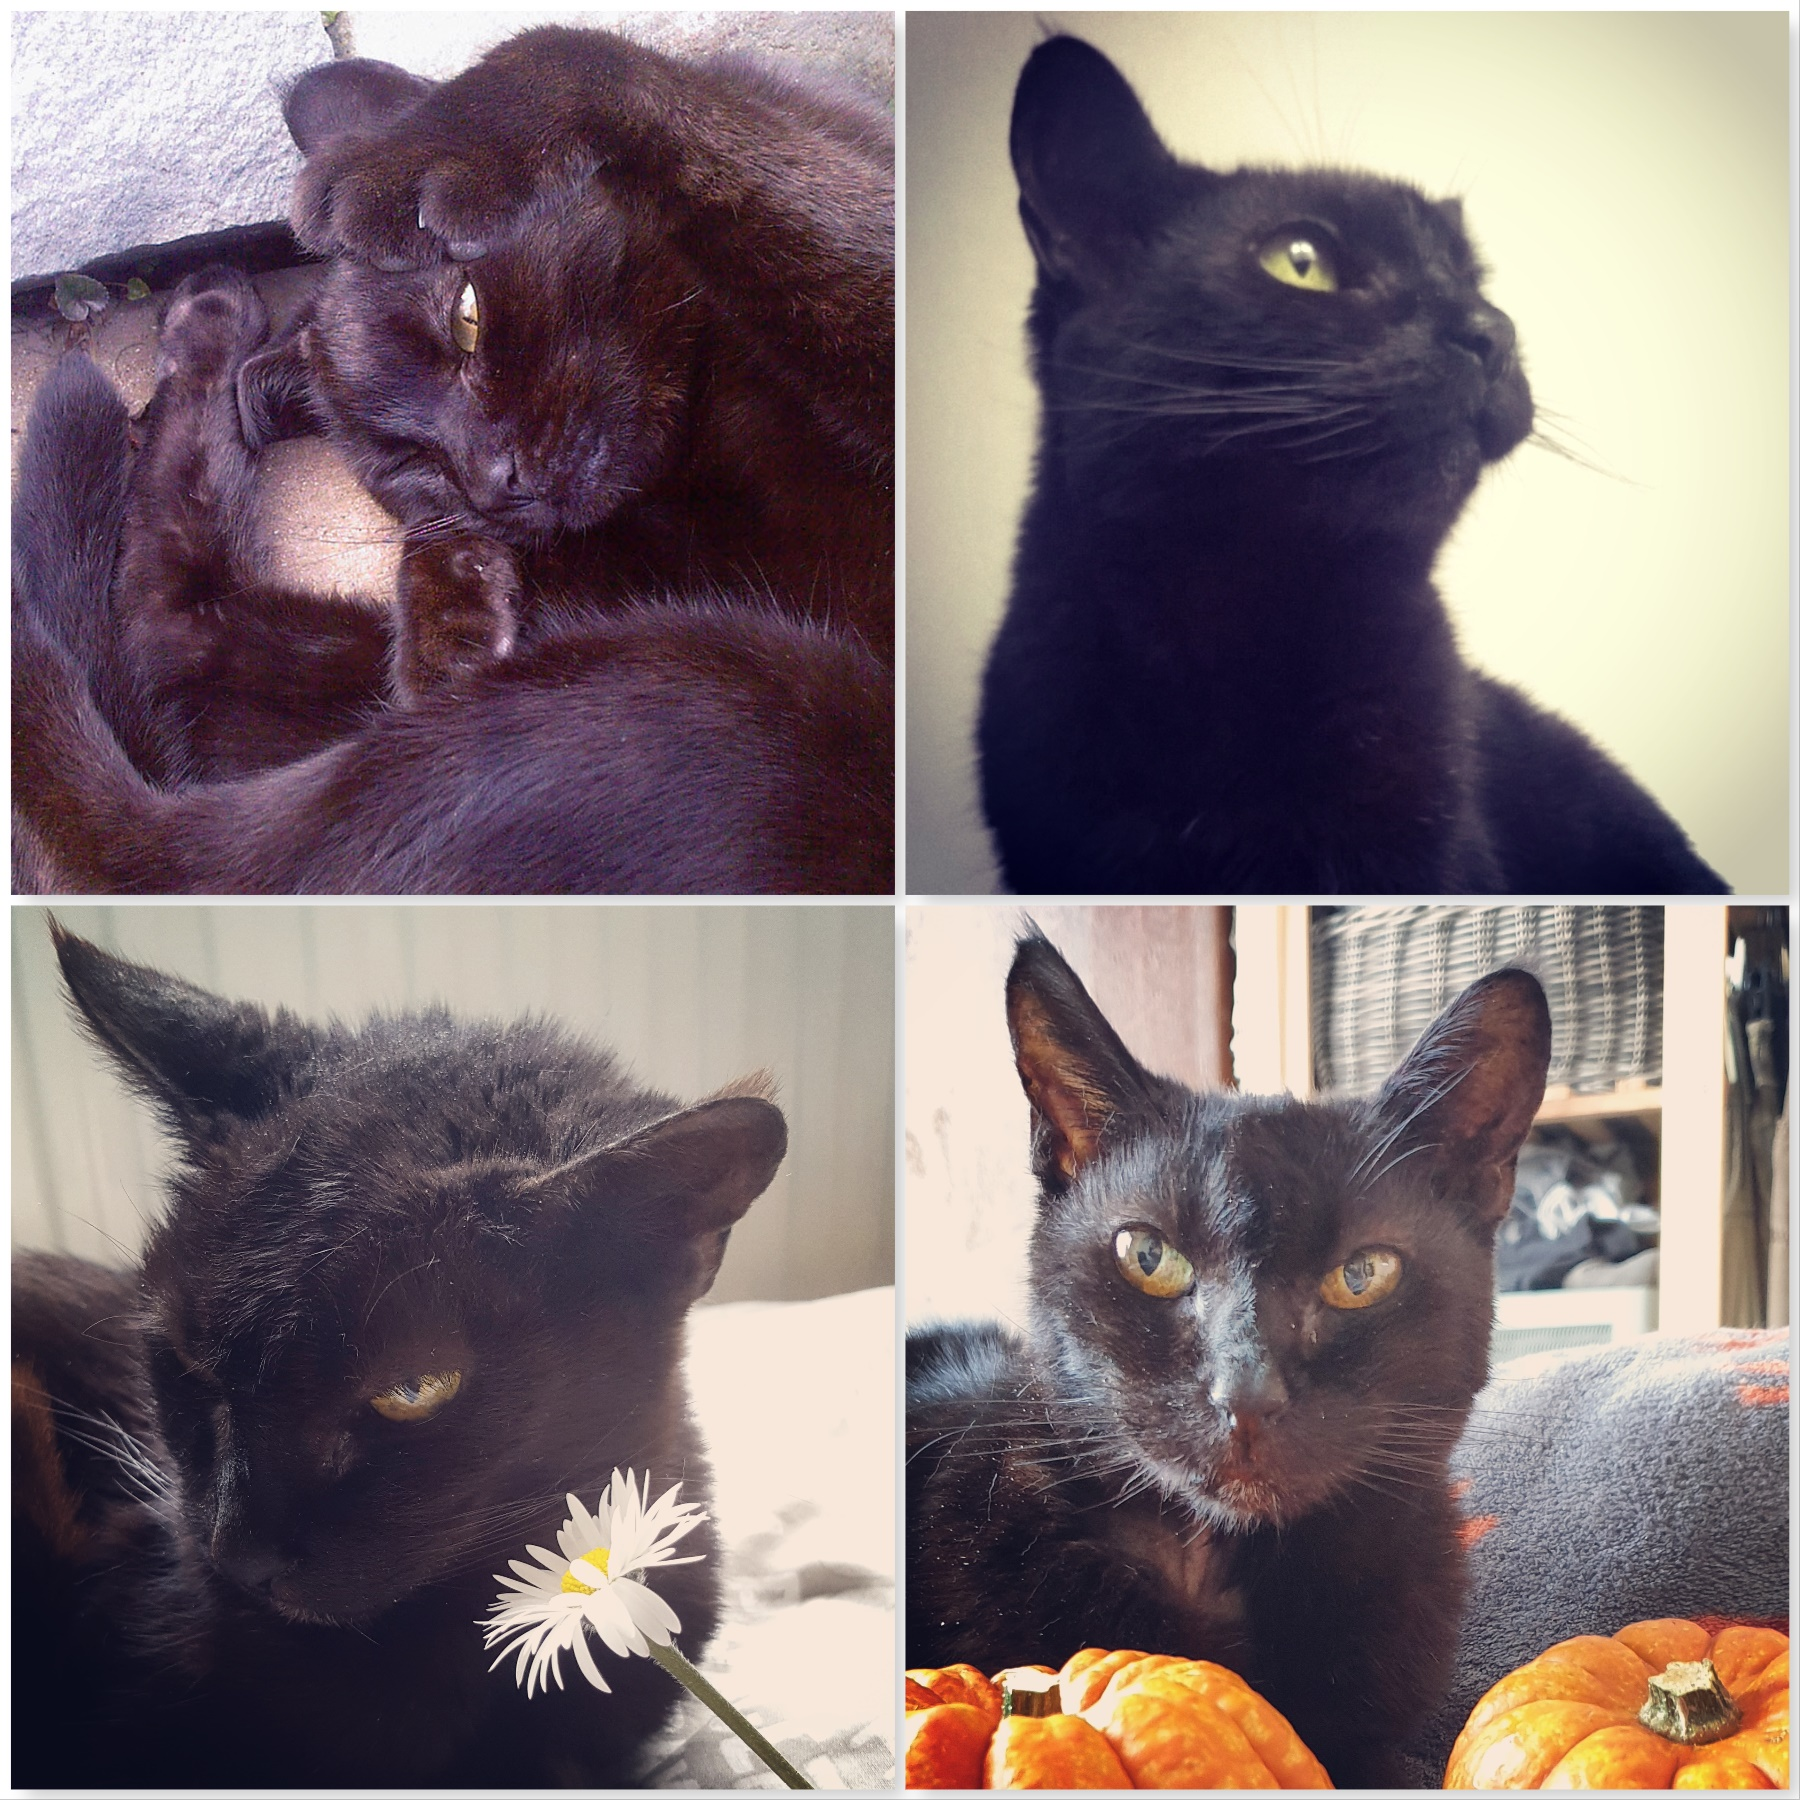 four photos of Raven black cat - one curled up, one looking stately, one with a daisy, one with pumpkins